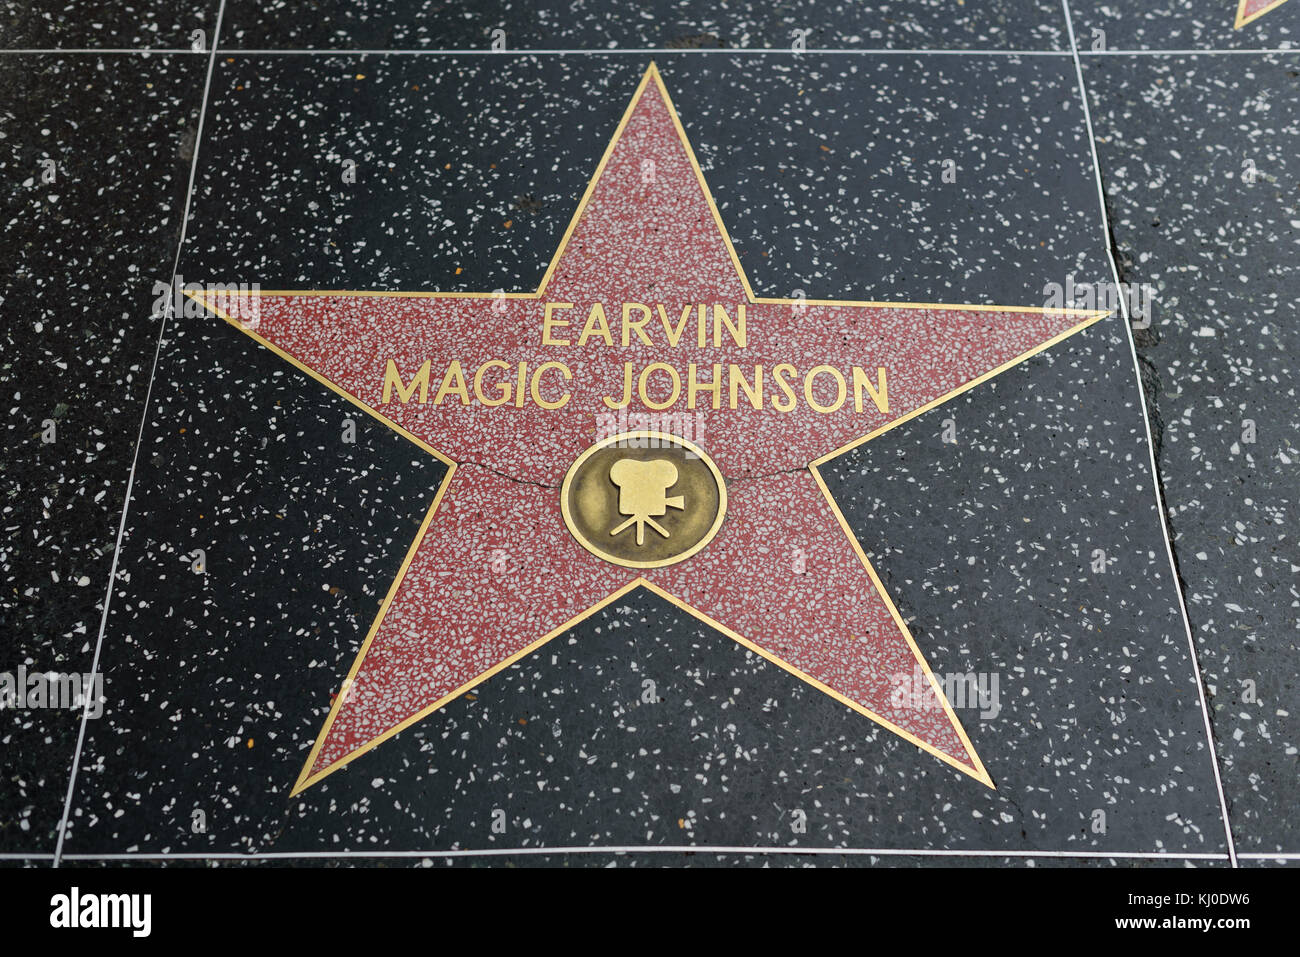 HOLLYWOOD, CA - DECEMBER 06: Erwin Magic Johnson star on the Hollywood Walk of Fame in Hollywood, California on - Stock Image